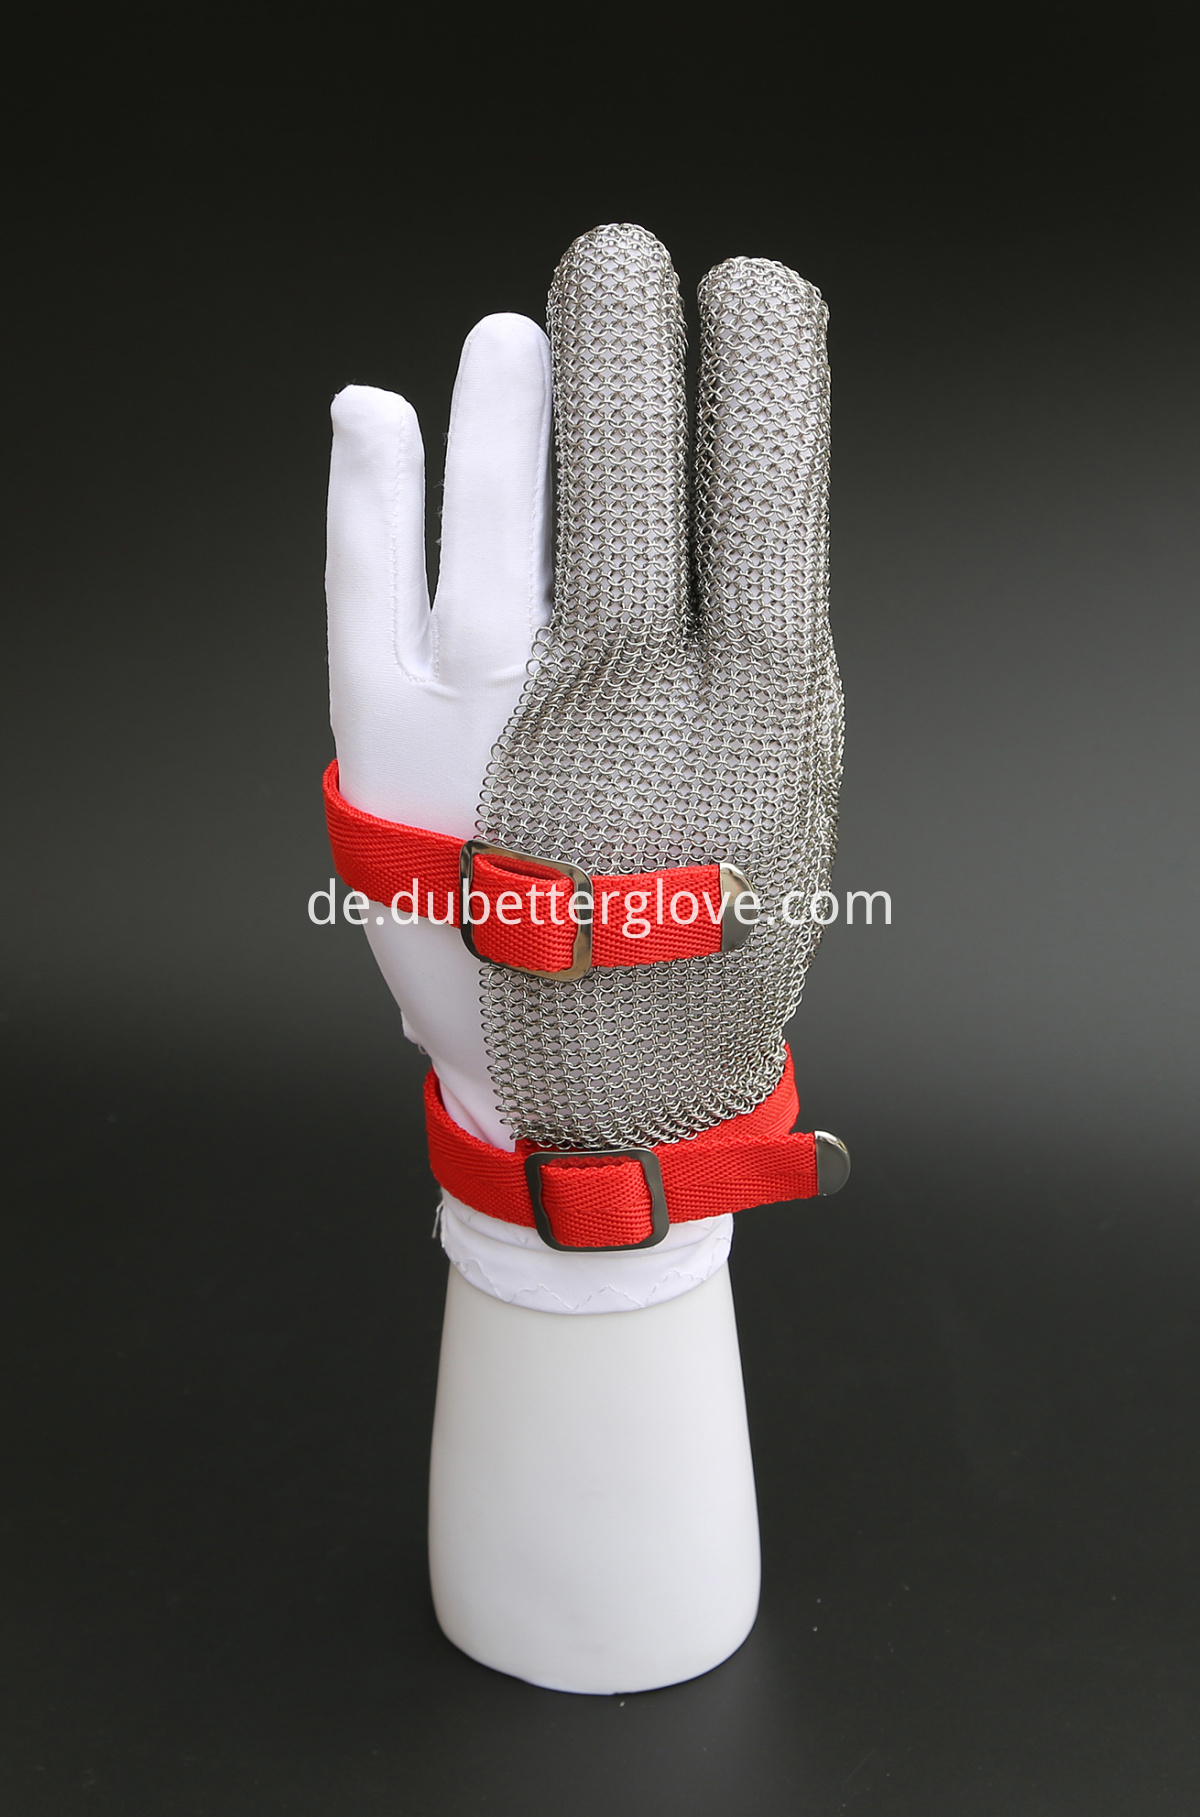 Dubetter chain mail gloves